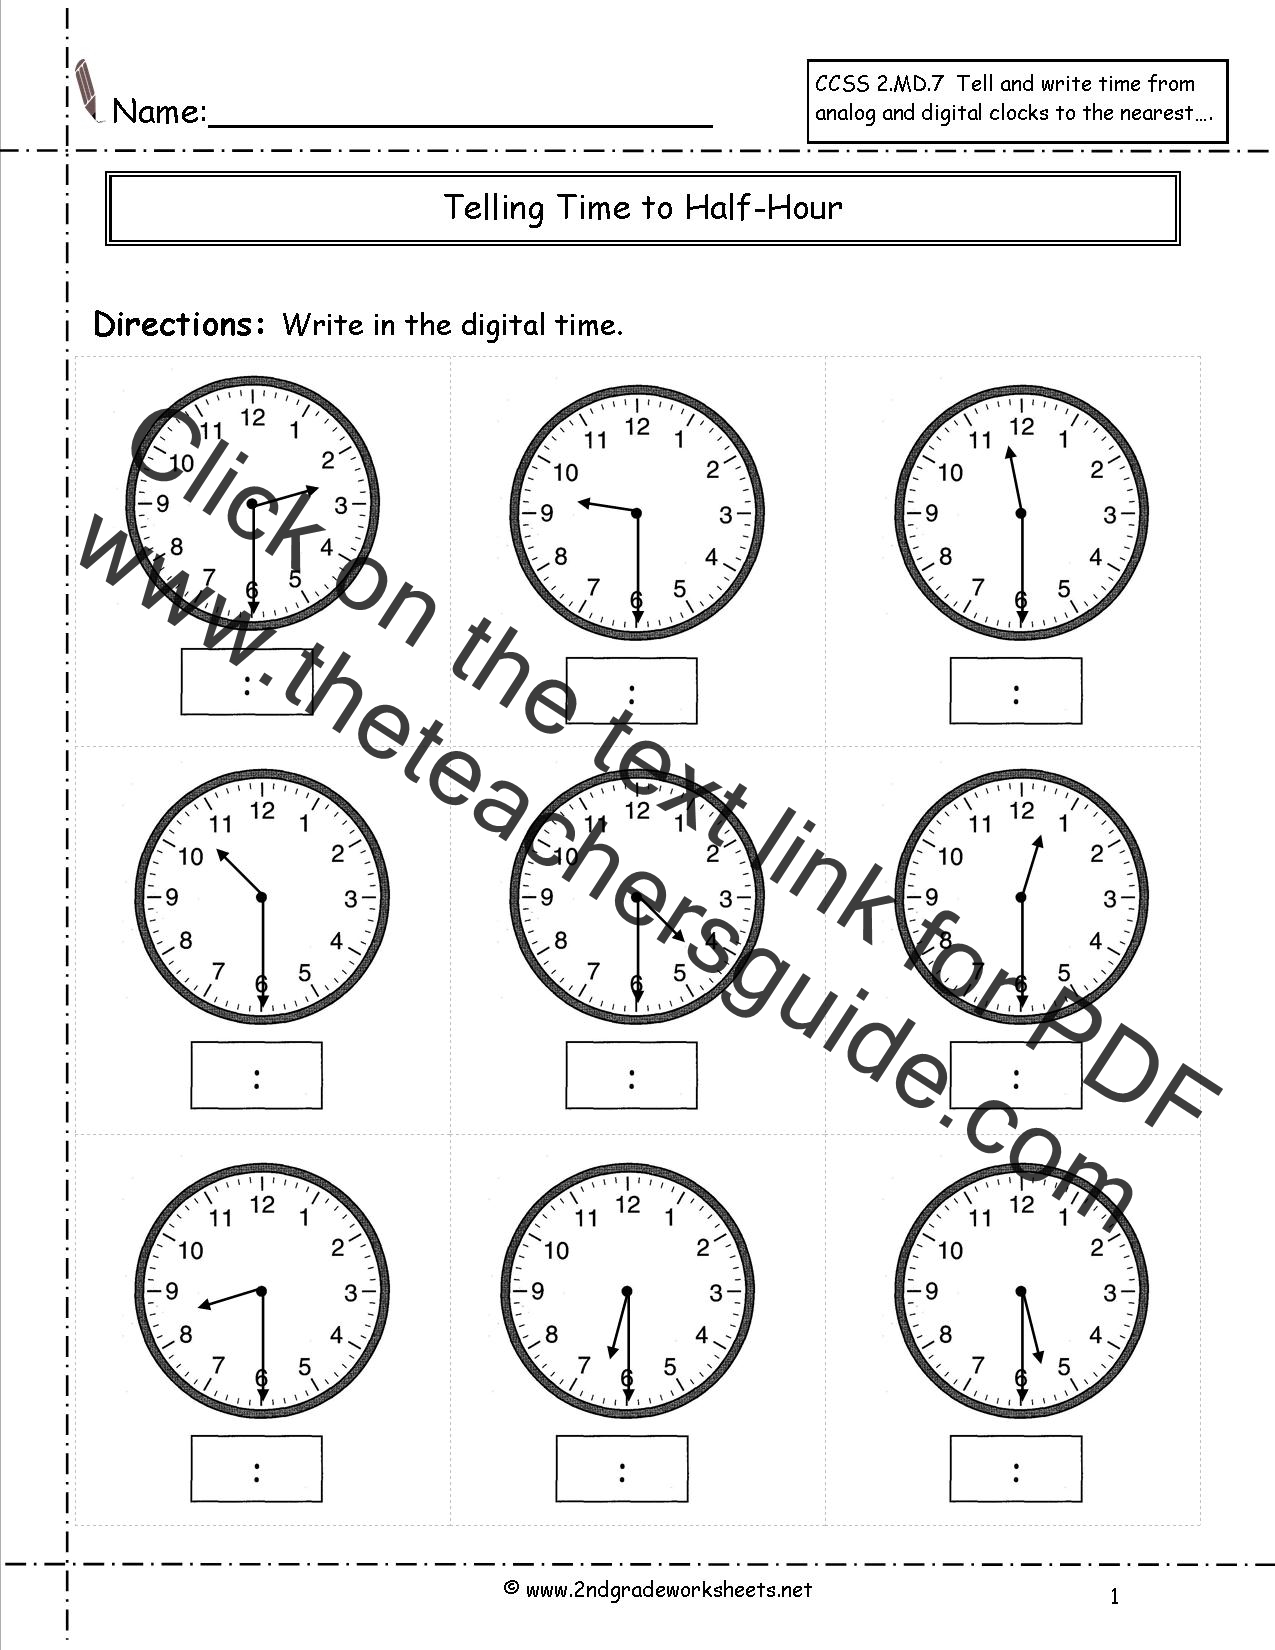 Uncategorized 2nd Grade Math Time Worksheets telling and writing time worksheets to nearest half hour worksheet